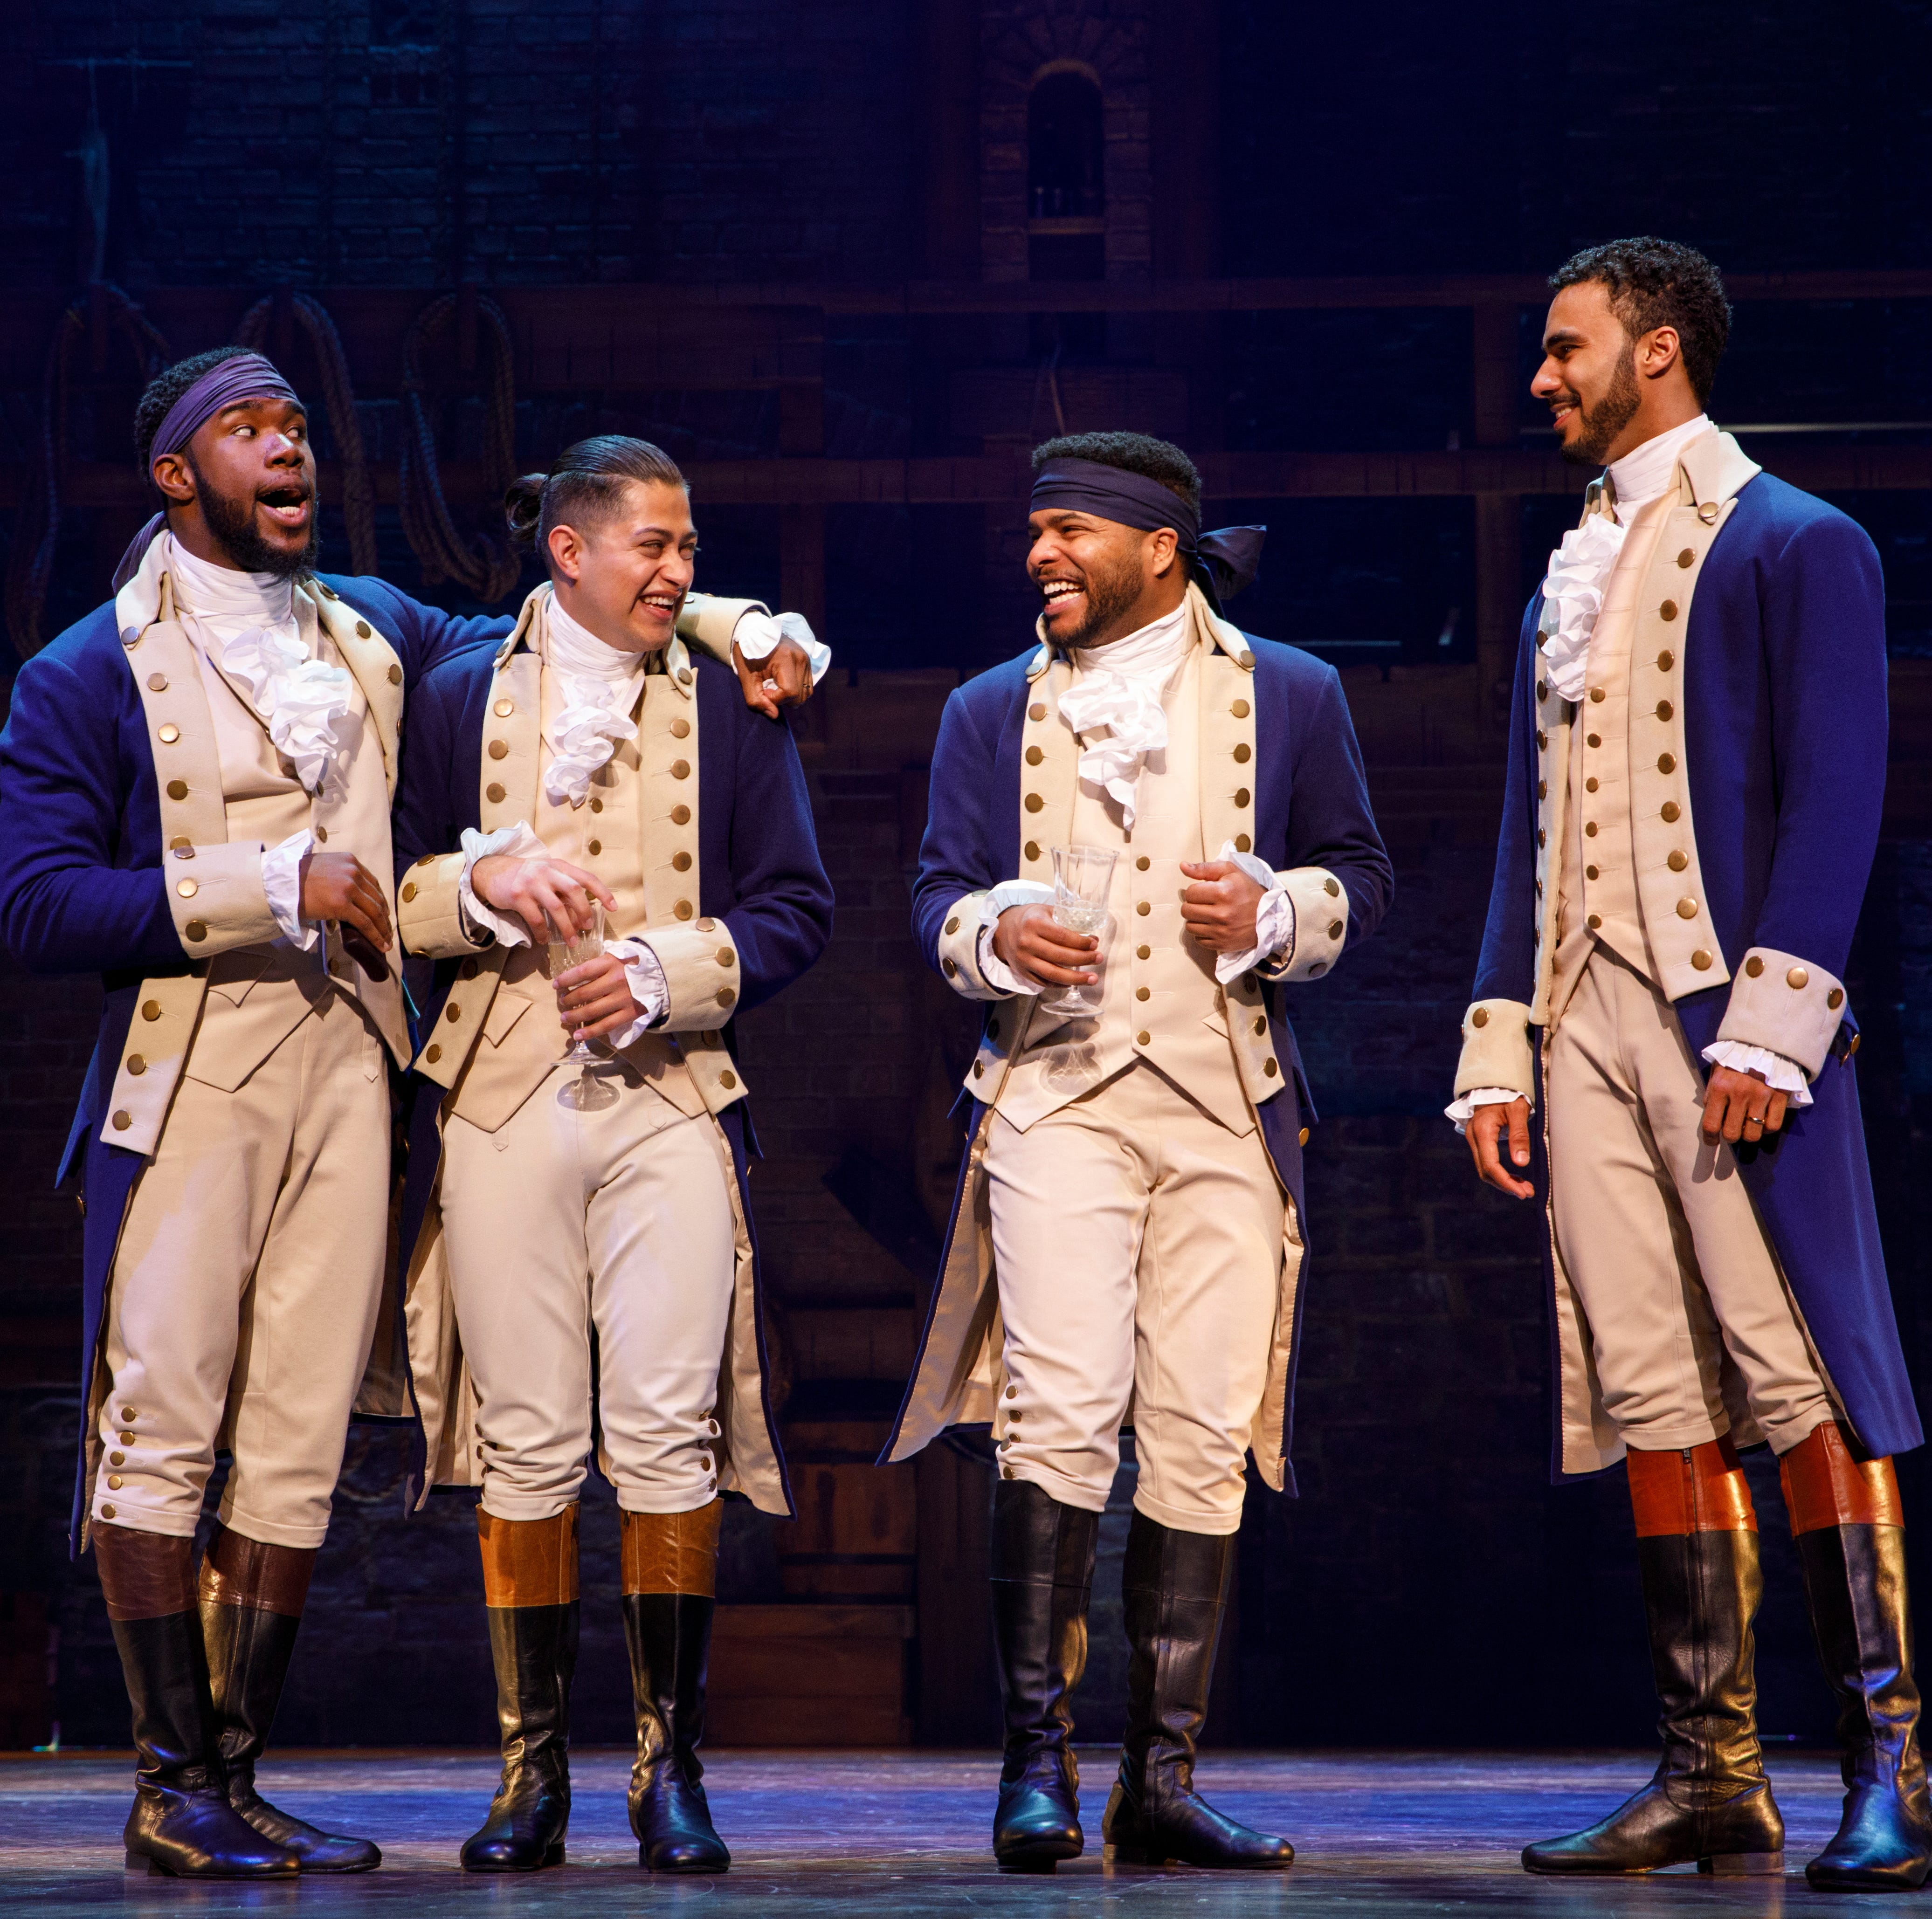 'Hamilton' tickets go on sale April 11 in Louisville. Here's how to snag a seat